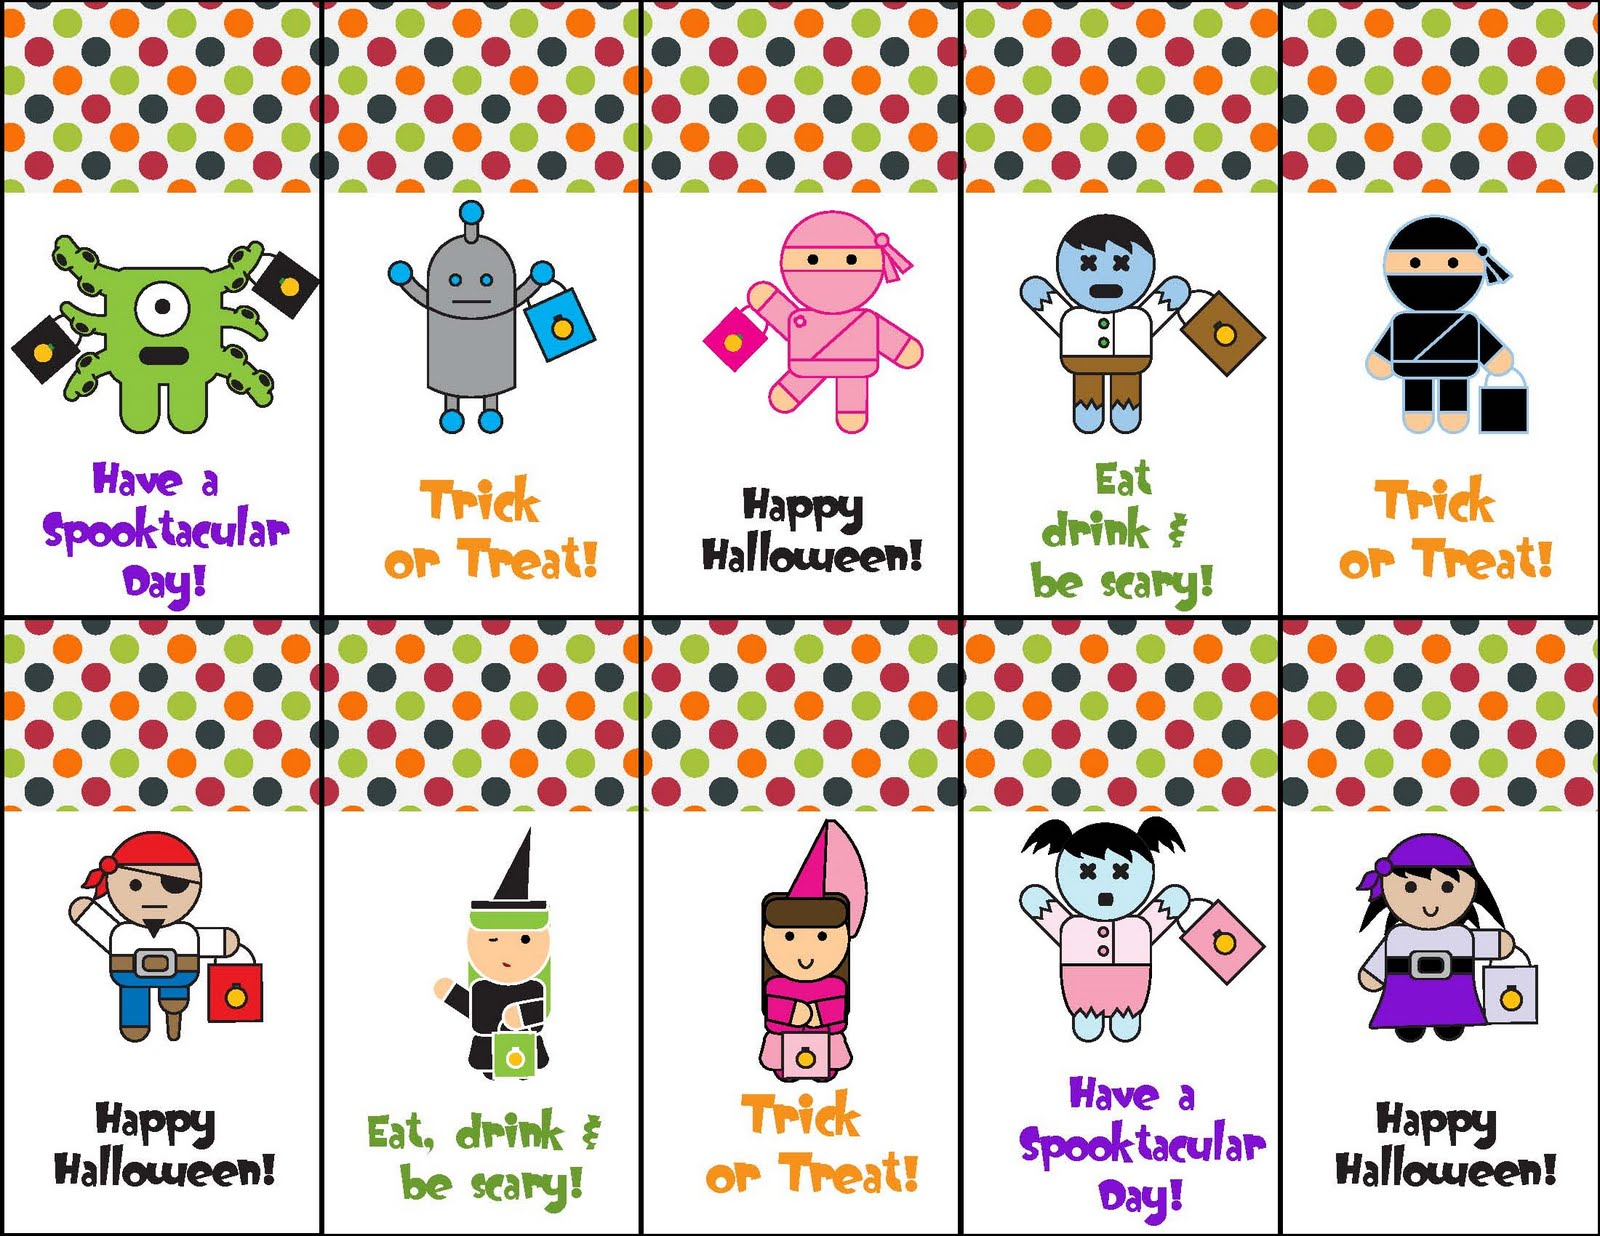 Monday\'s blog has something free! 9.27.10 | Clickable Party